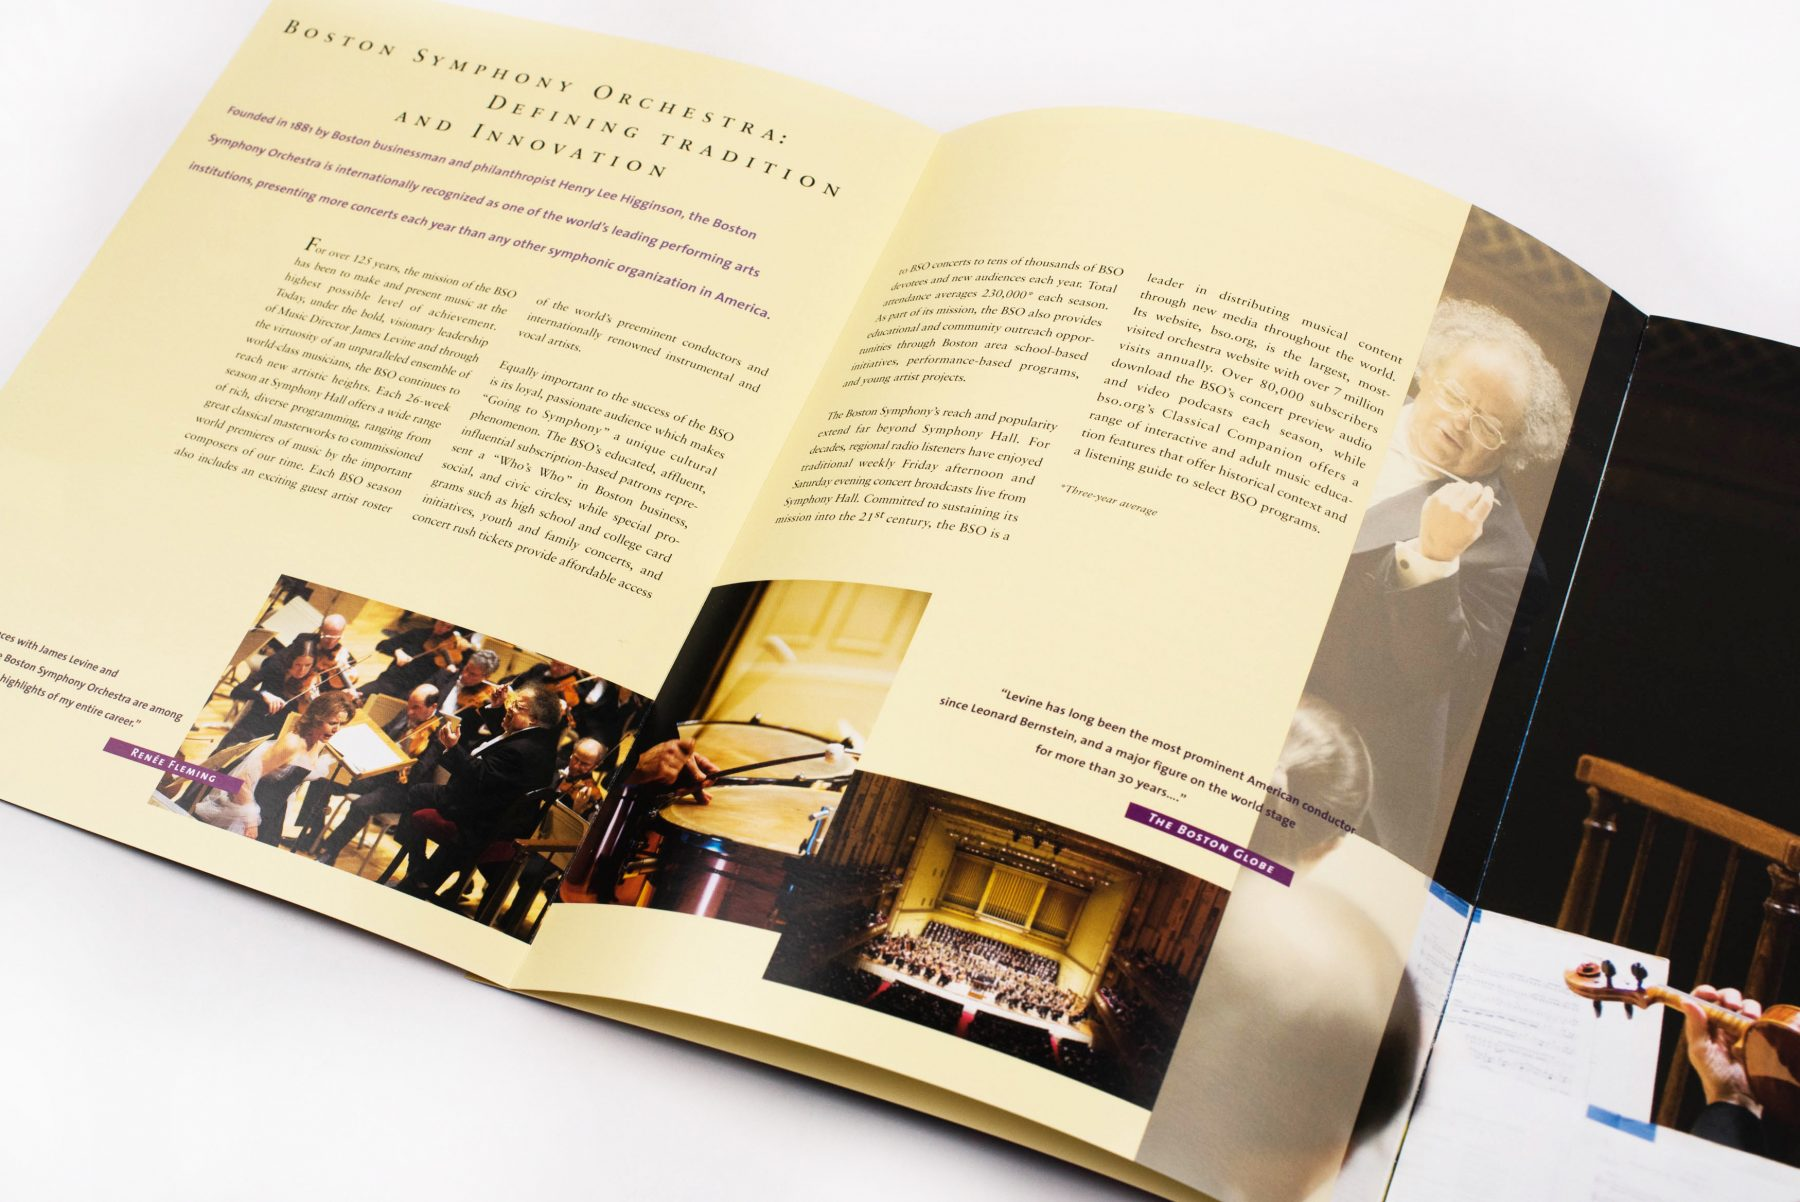 Boston Symphony Orchestra corporate sponsorship brochure: Defining Tradition and Innovation